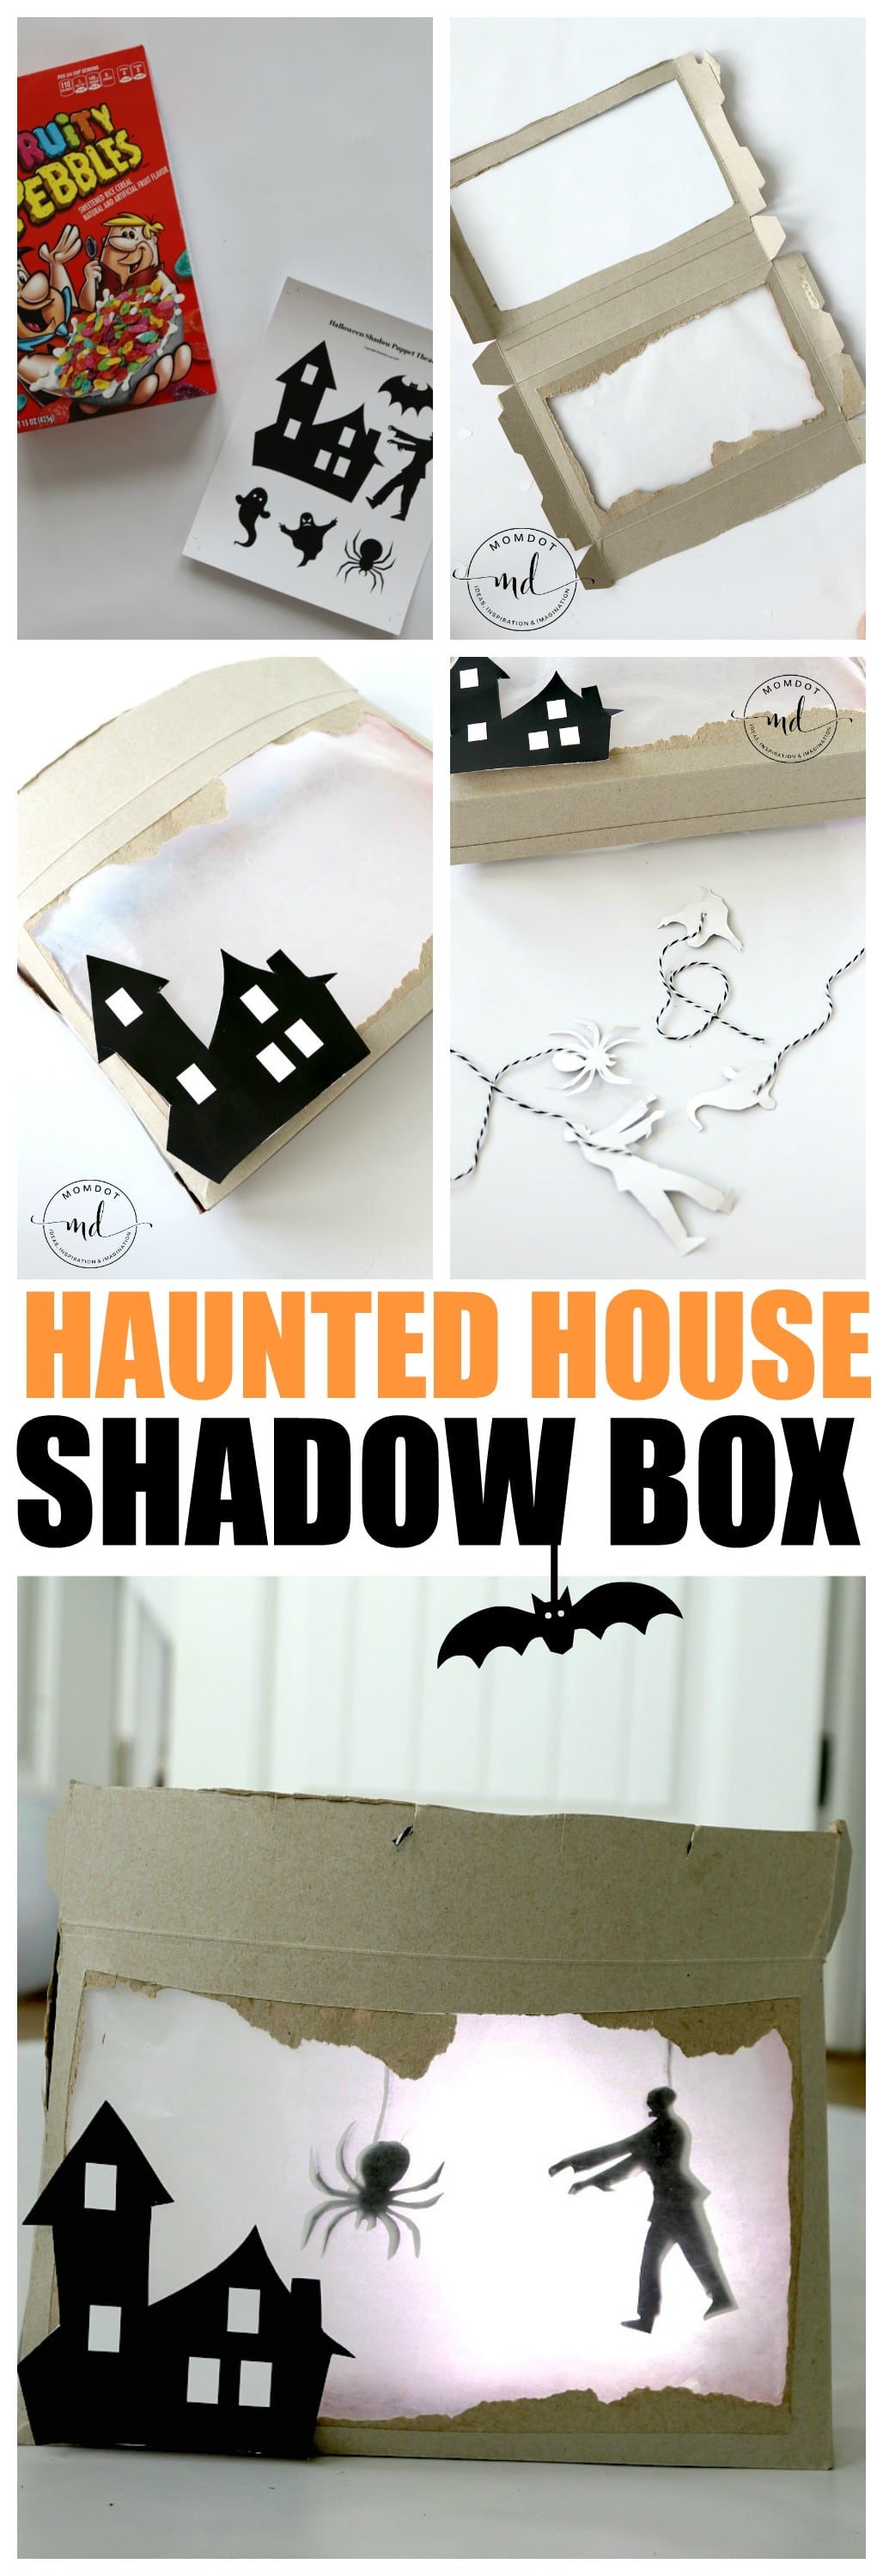 Haunted House Craft, Create a Shadow Box DIY, How to make a cereal box haunted house with FREE printable spooks